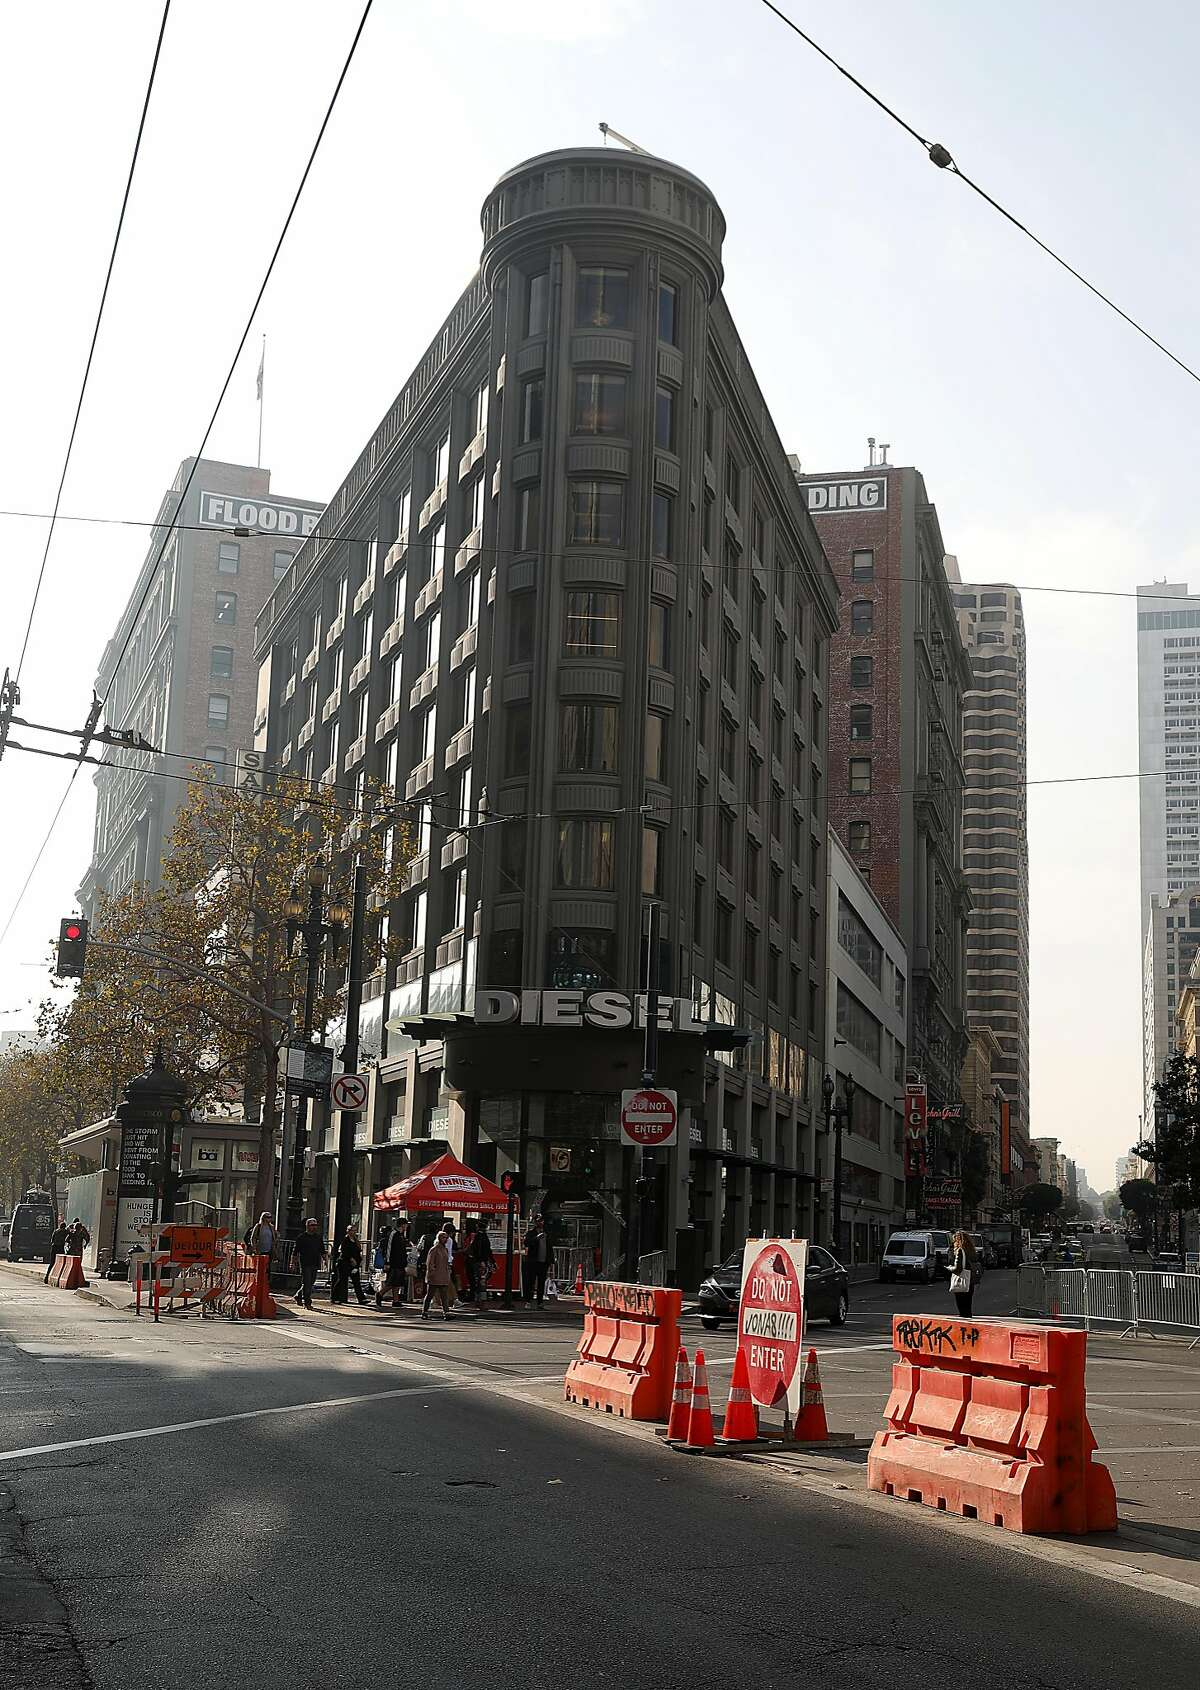 View of the bay area WeWork HQ's seen at 800 Market St. on Tuesday, Nov. 20, 2018, in San Francisco, Calif.